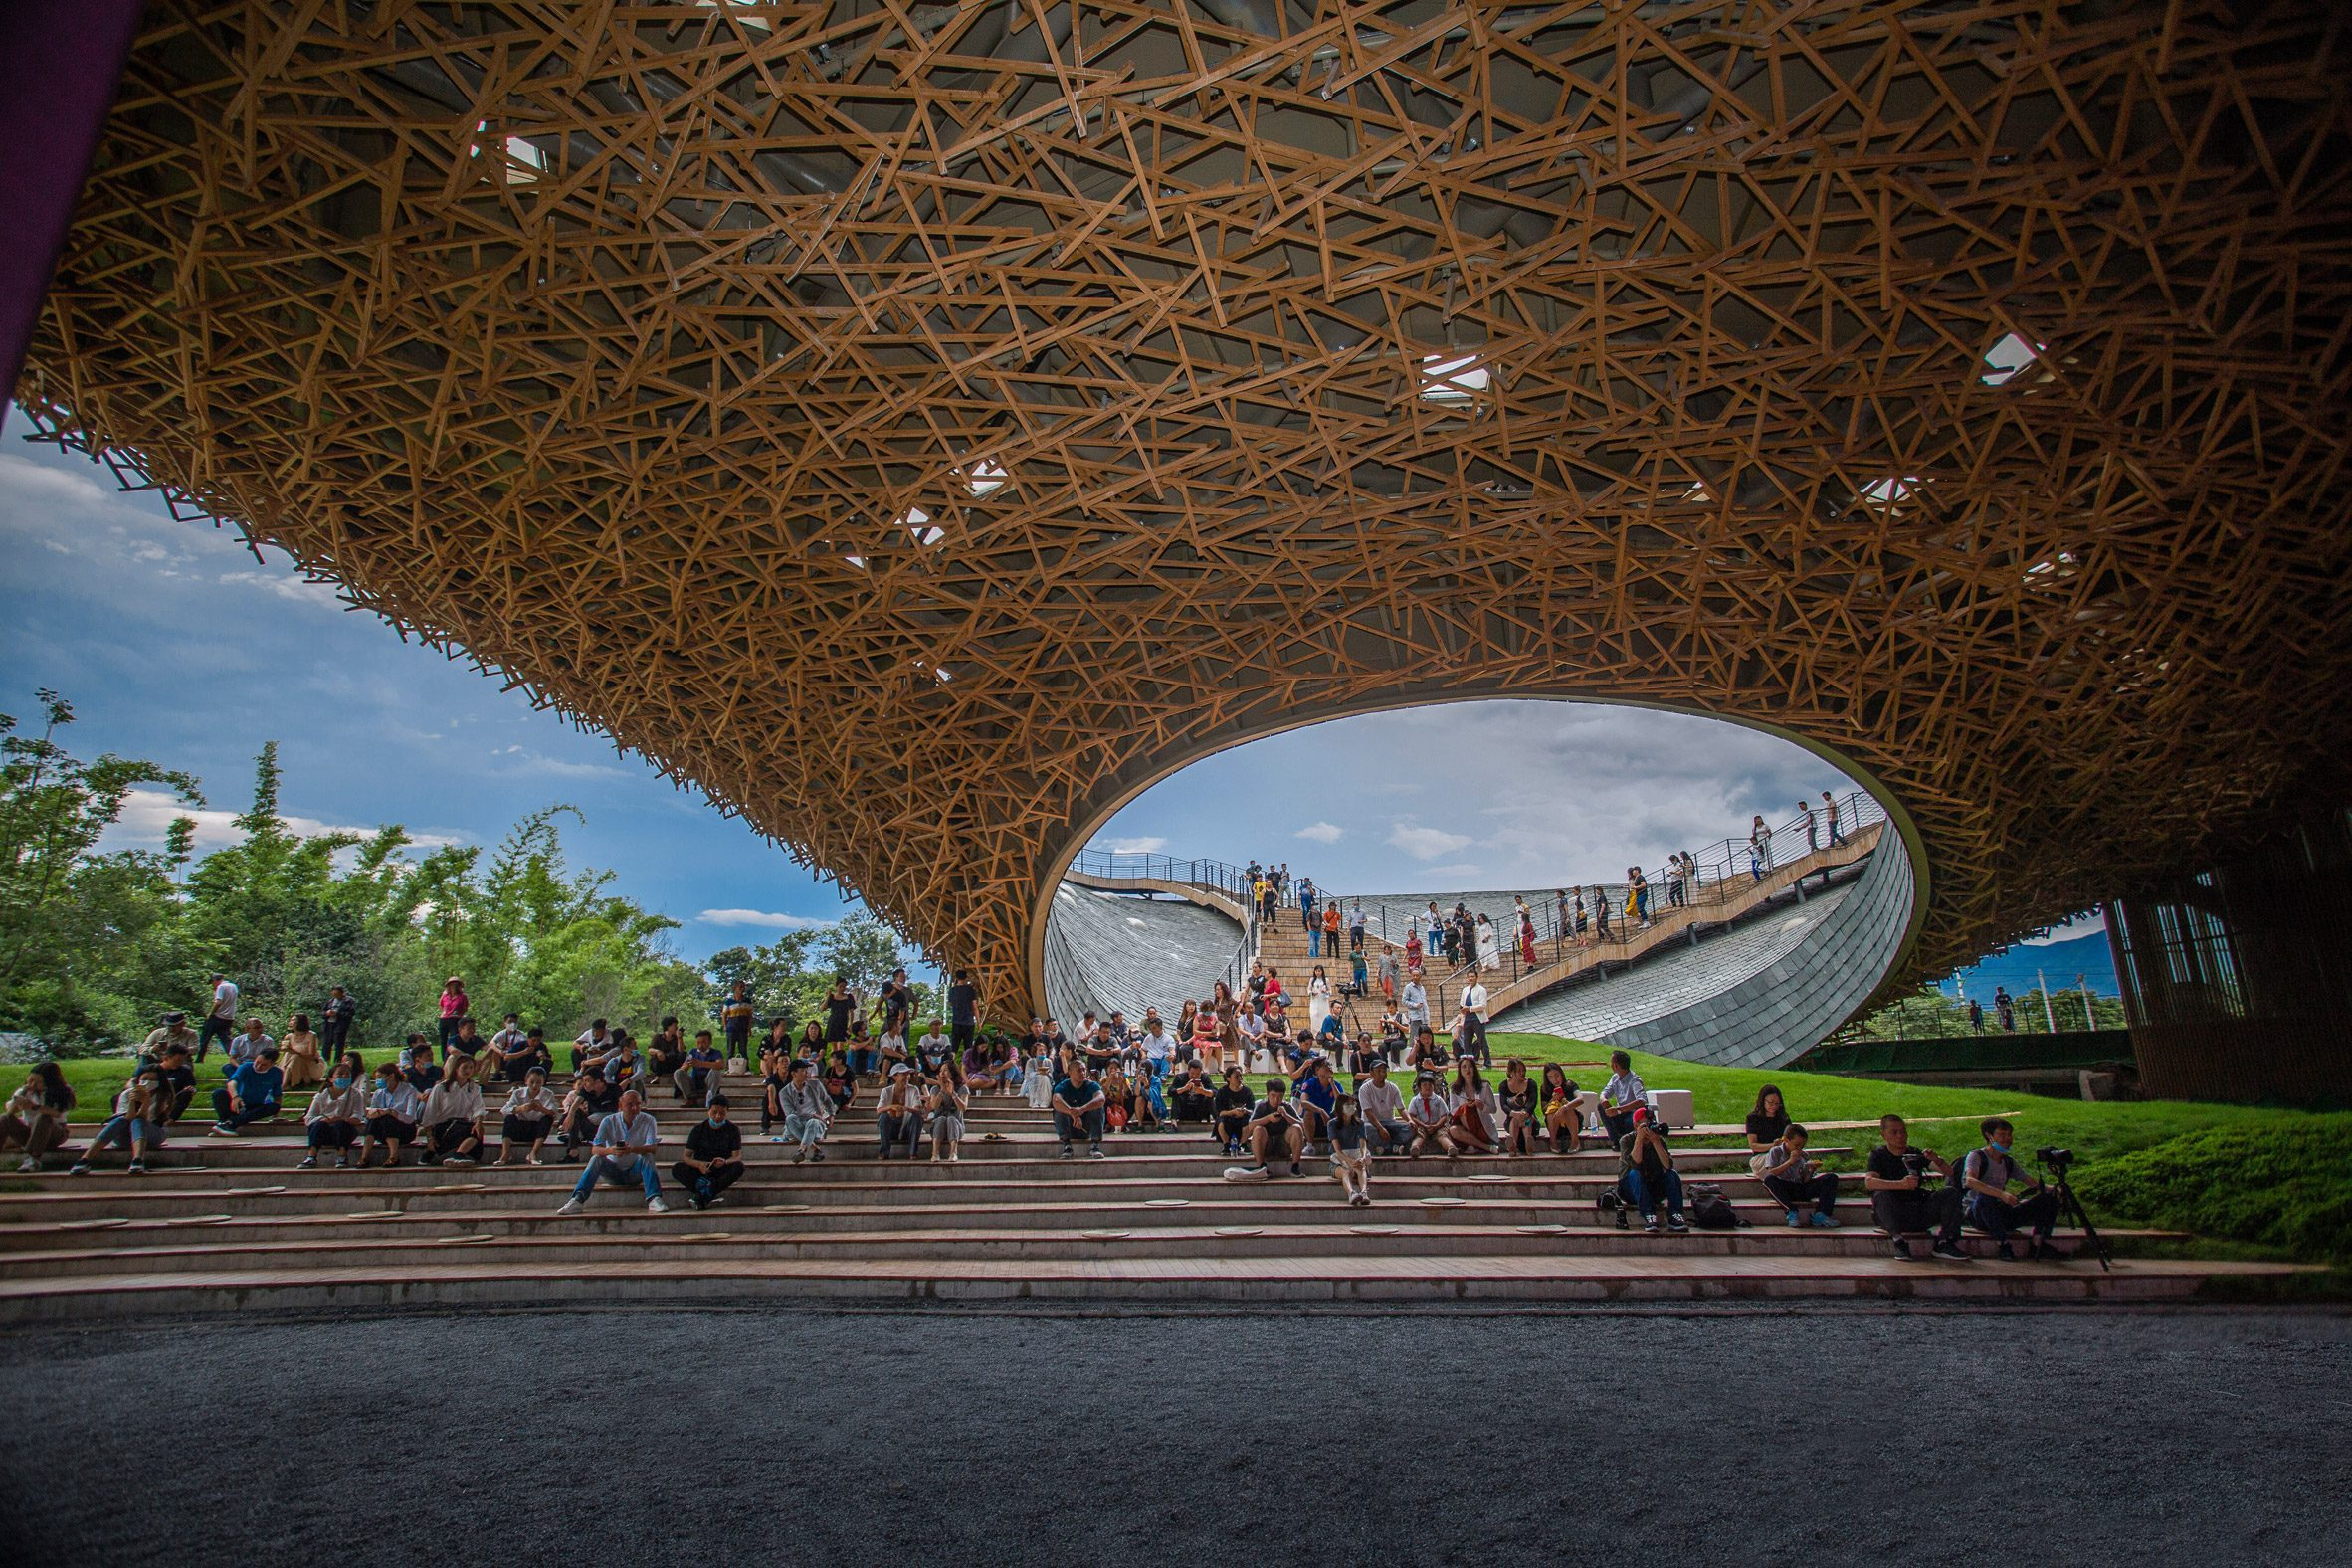 A plaza is located beneath the Yang Liping Performing Arts Center's slate roof